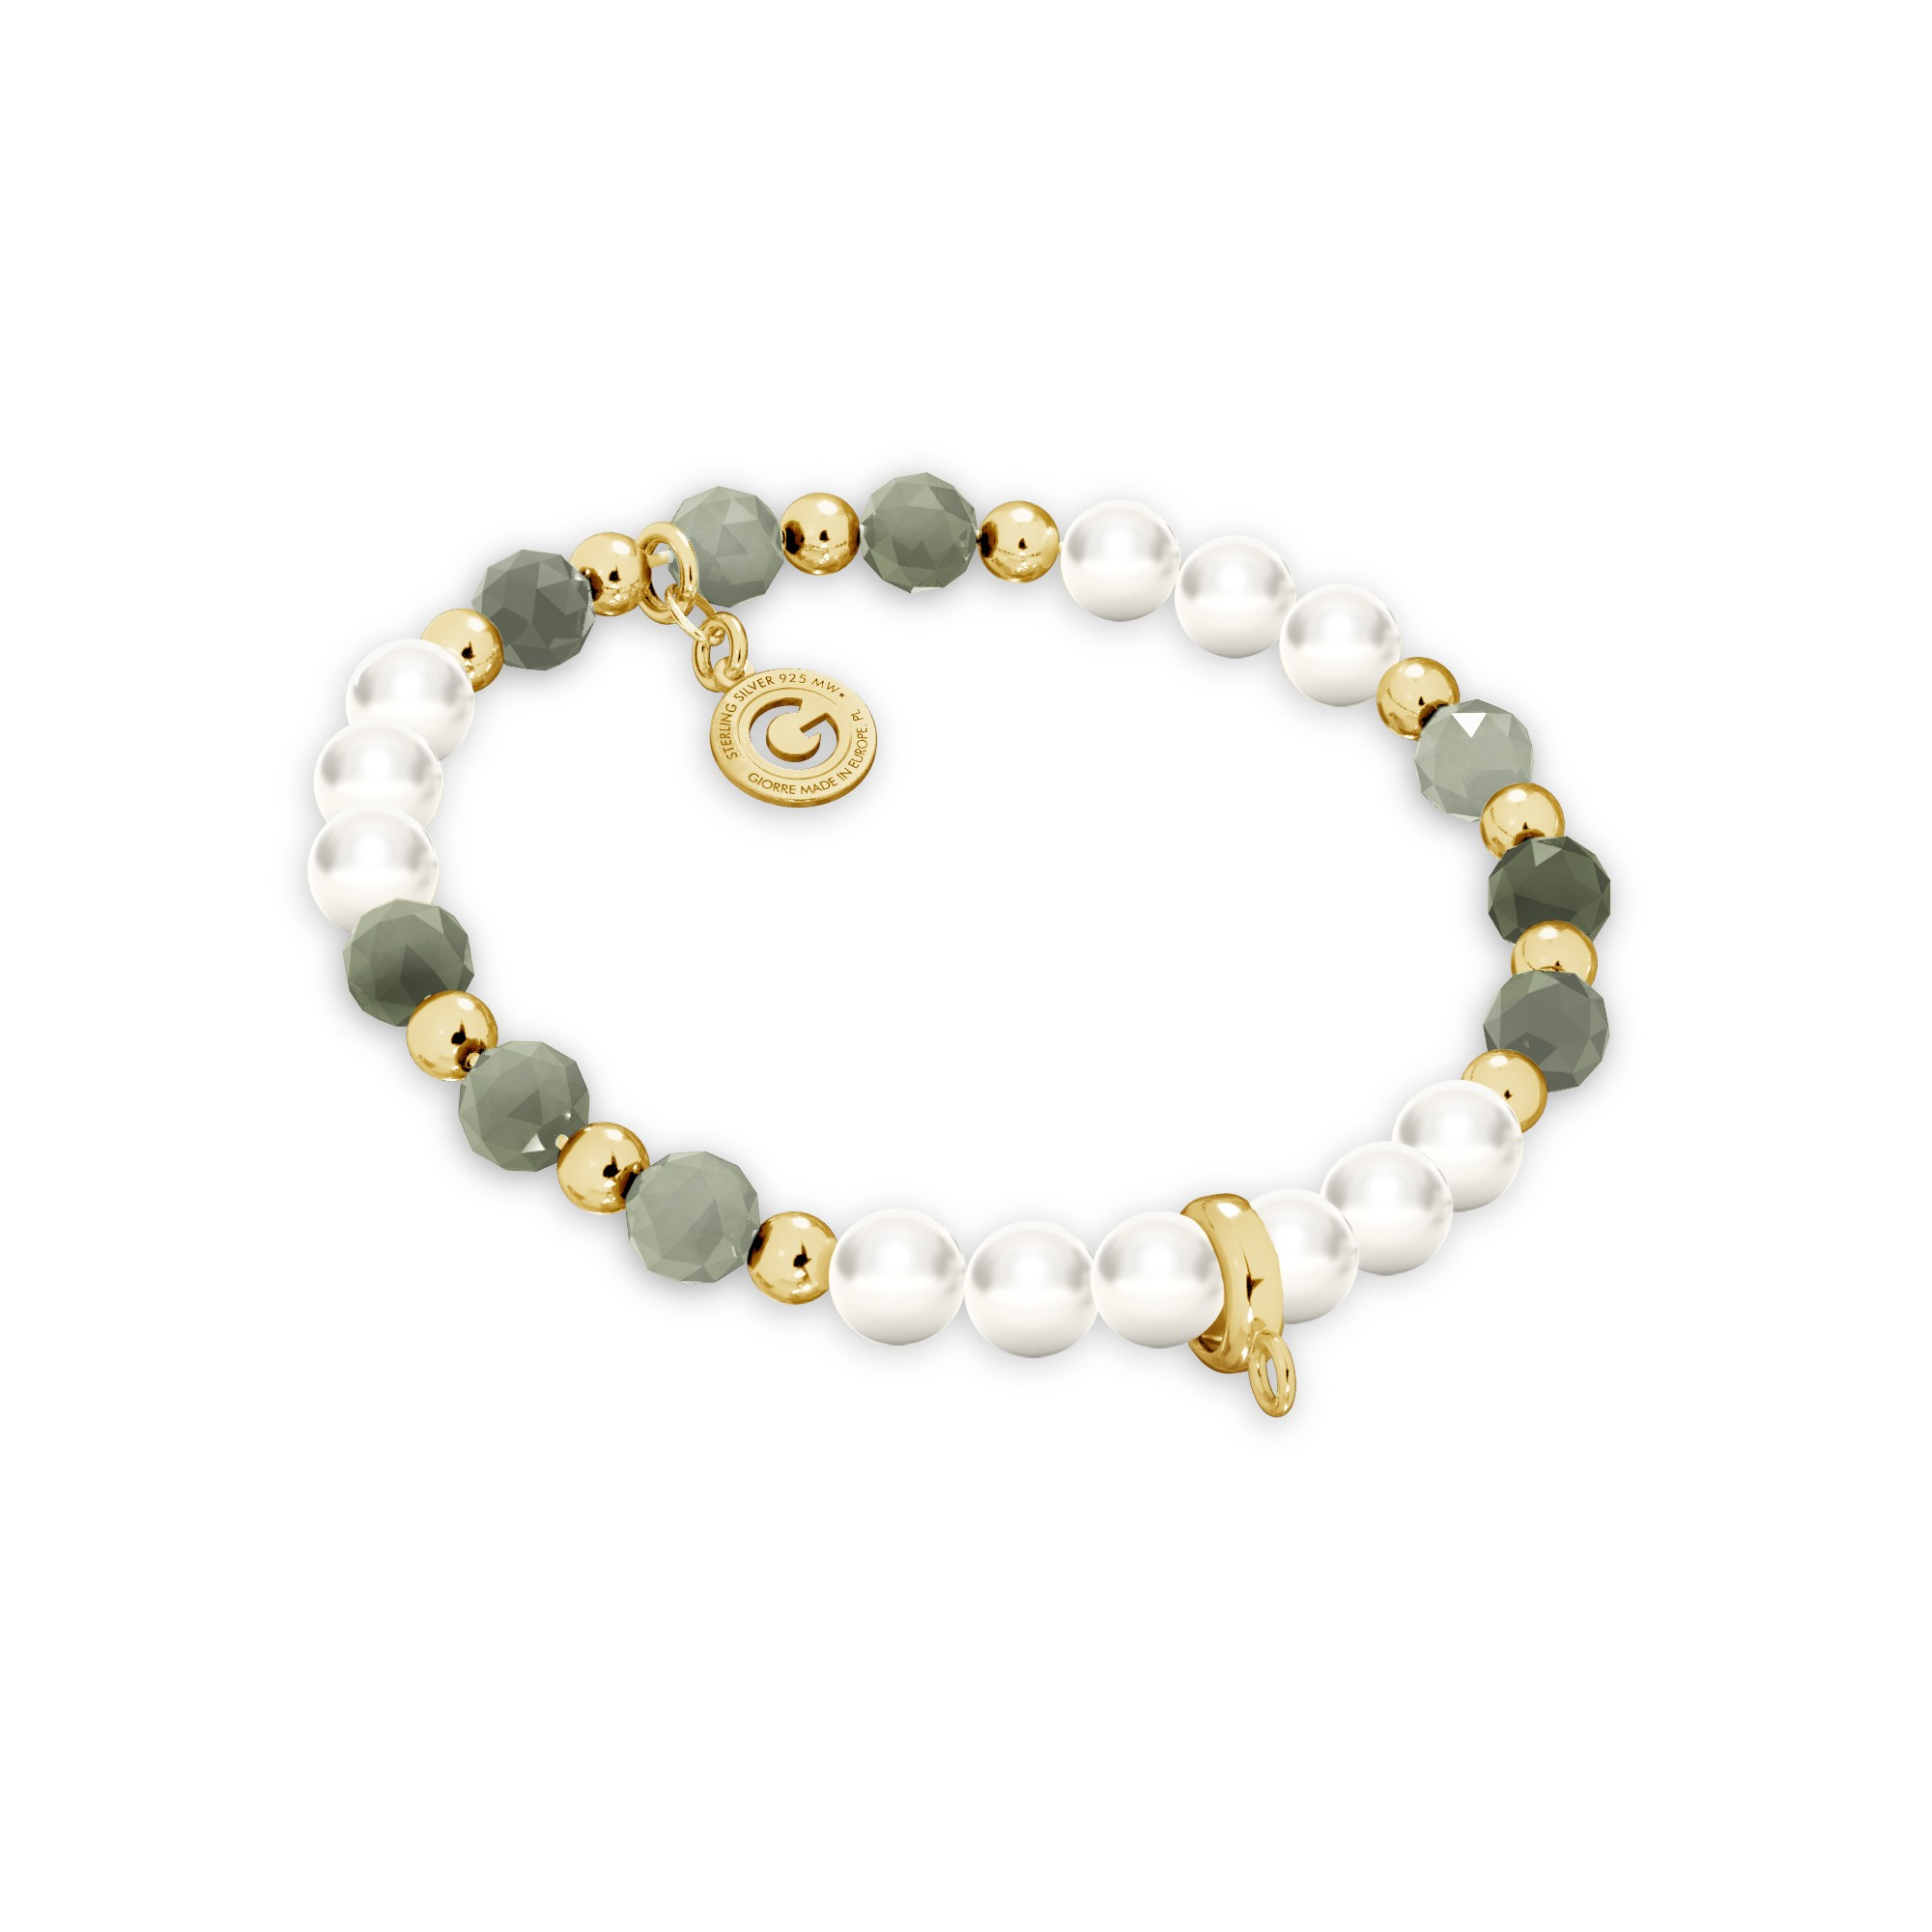 Emerald pearl charms bracelet, sterling silver 925